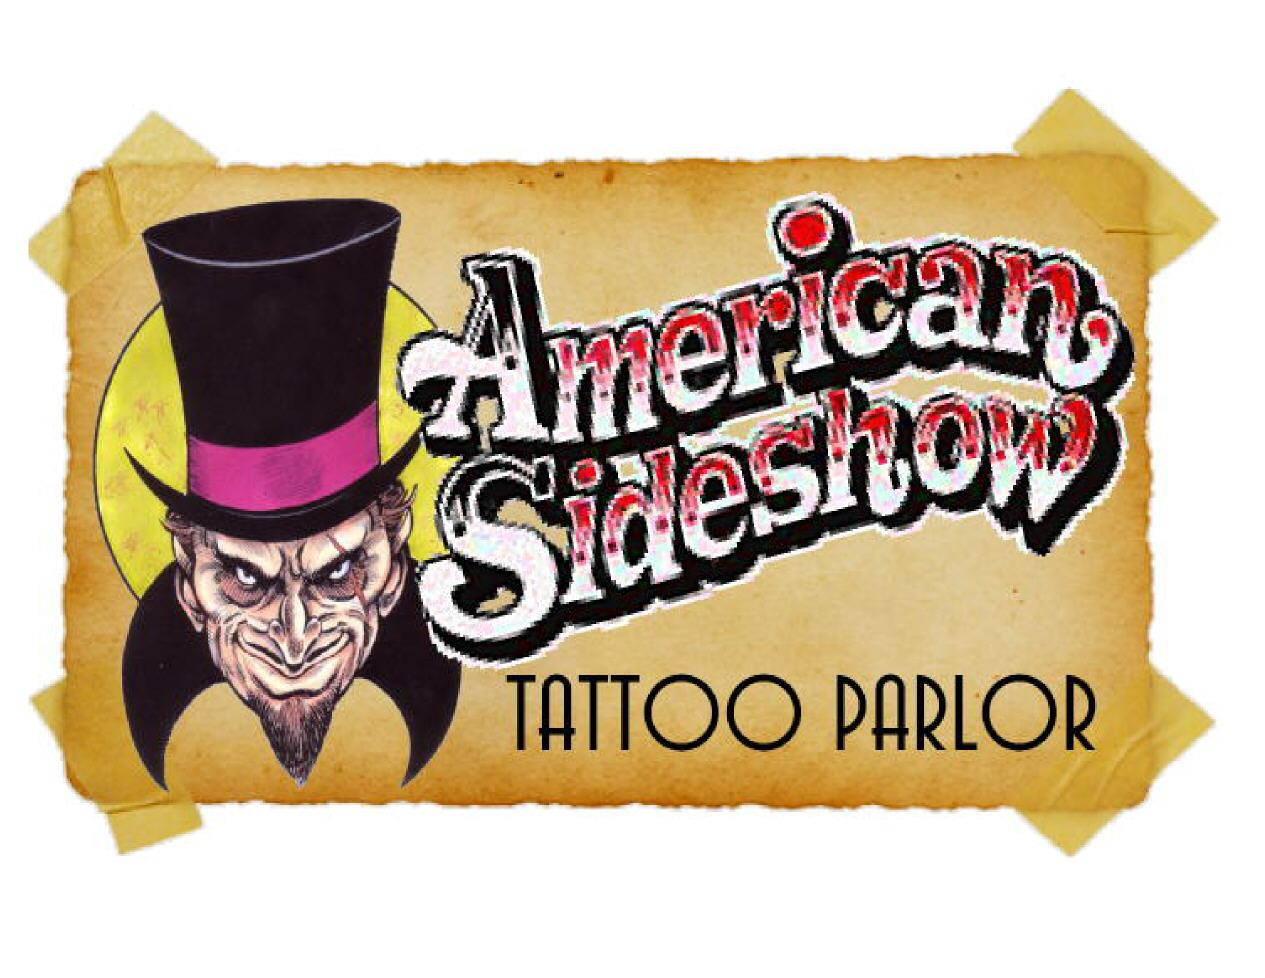 American sideshow tattoo 6339 olde york rd parma heights